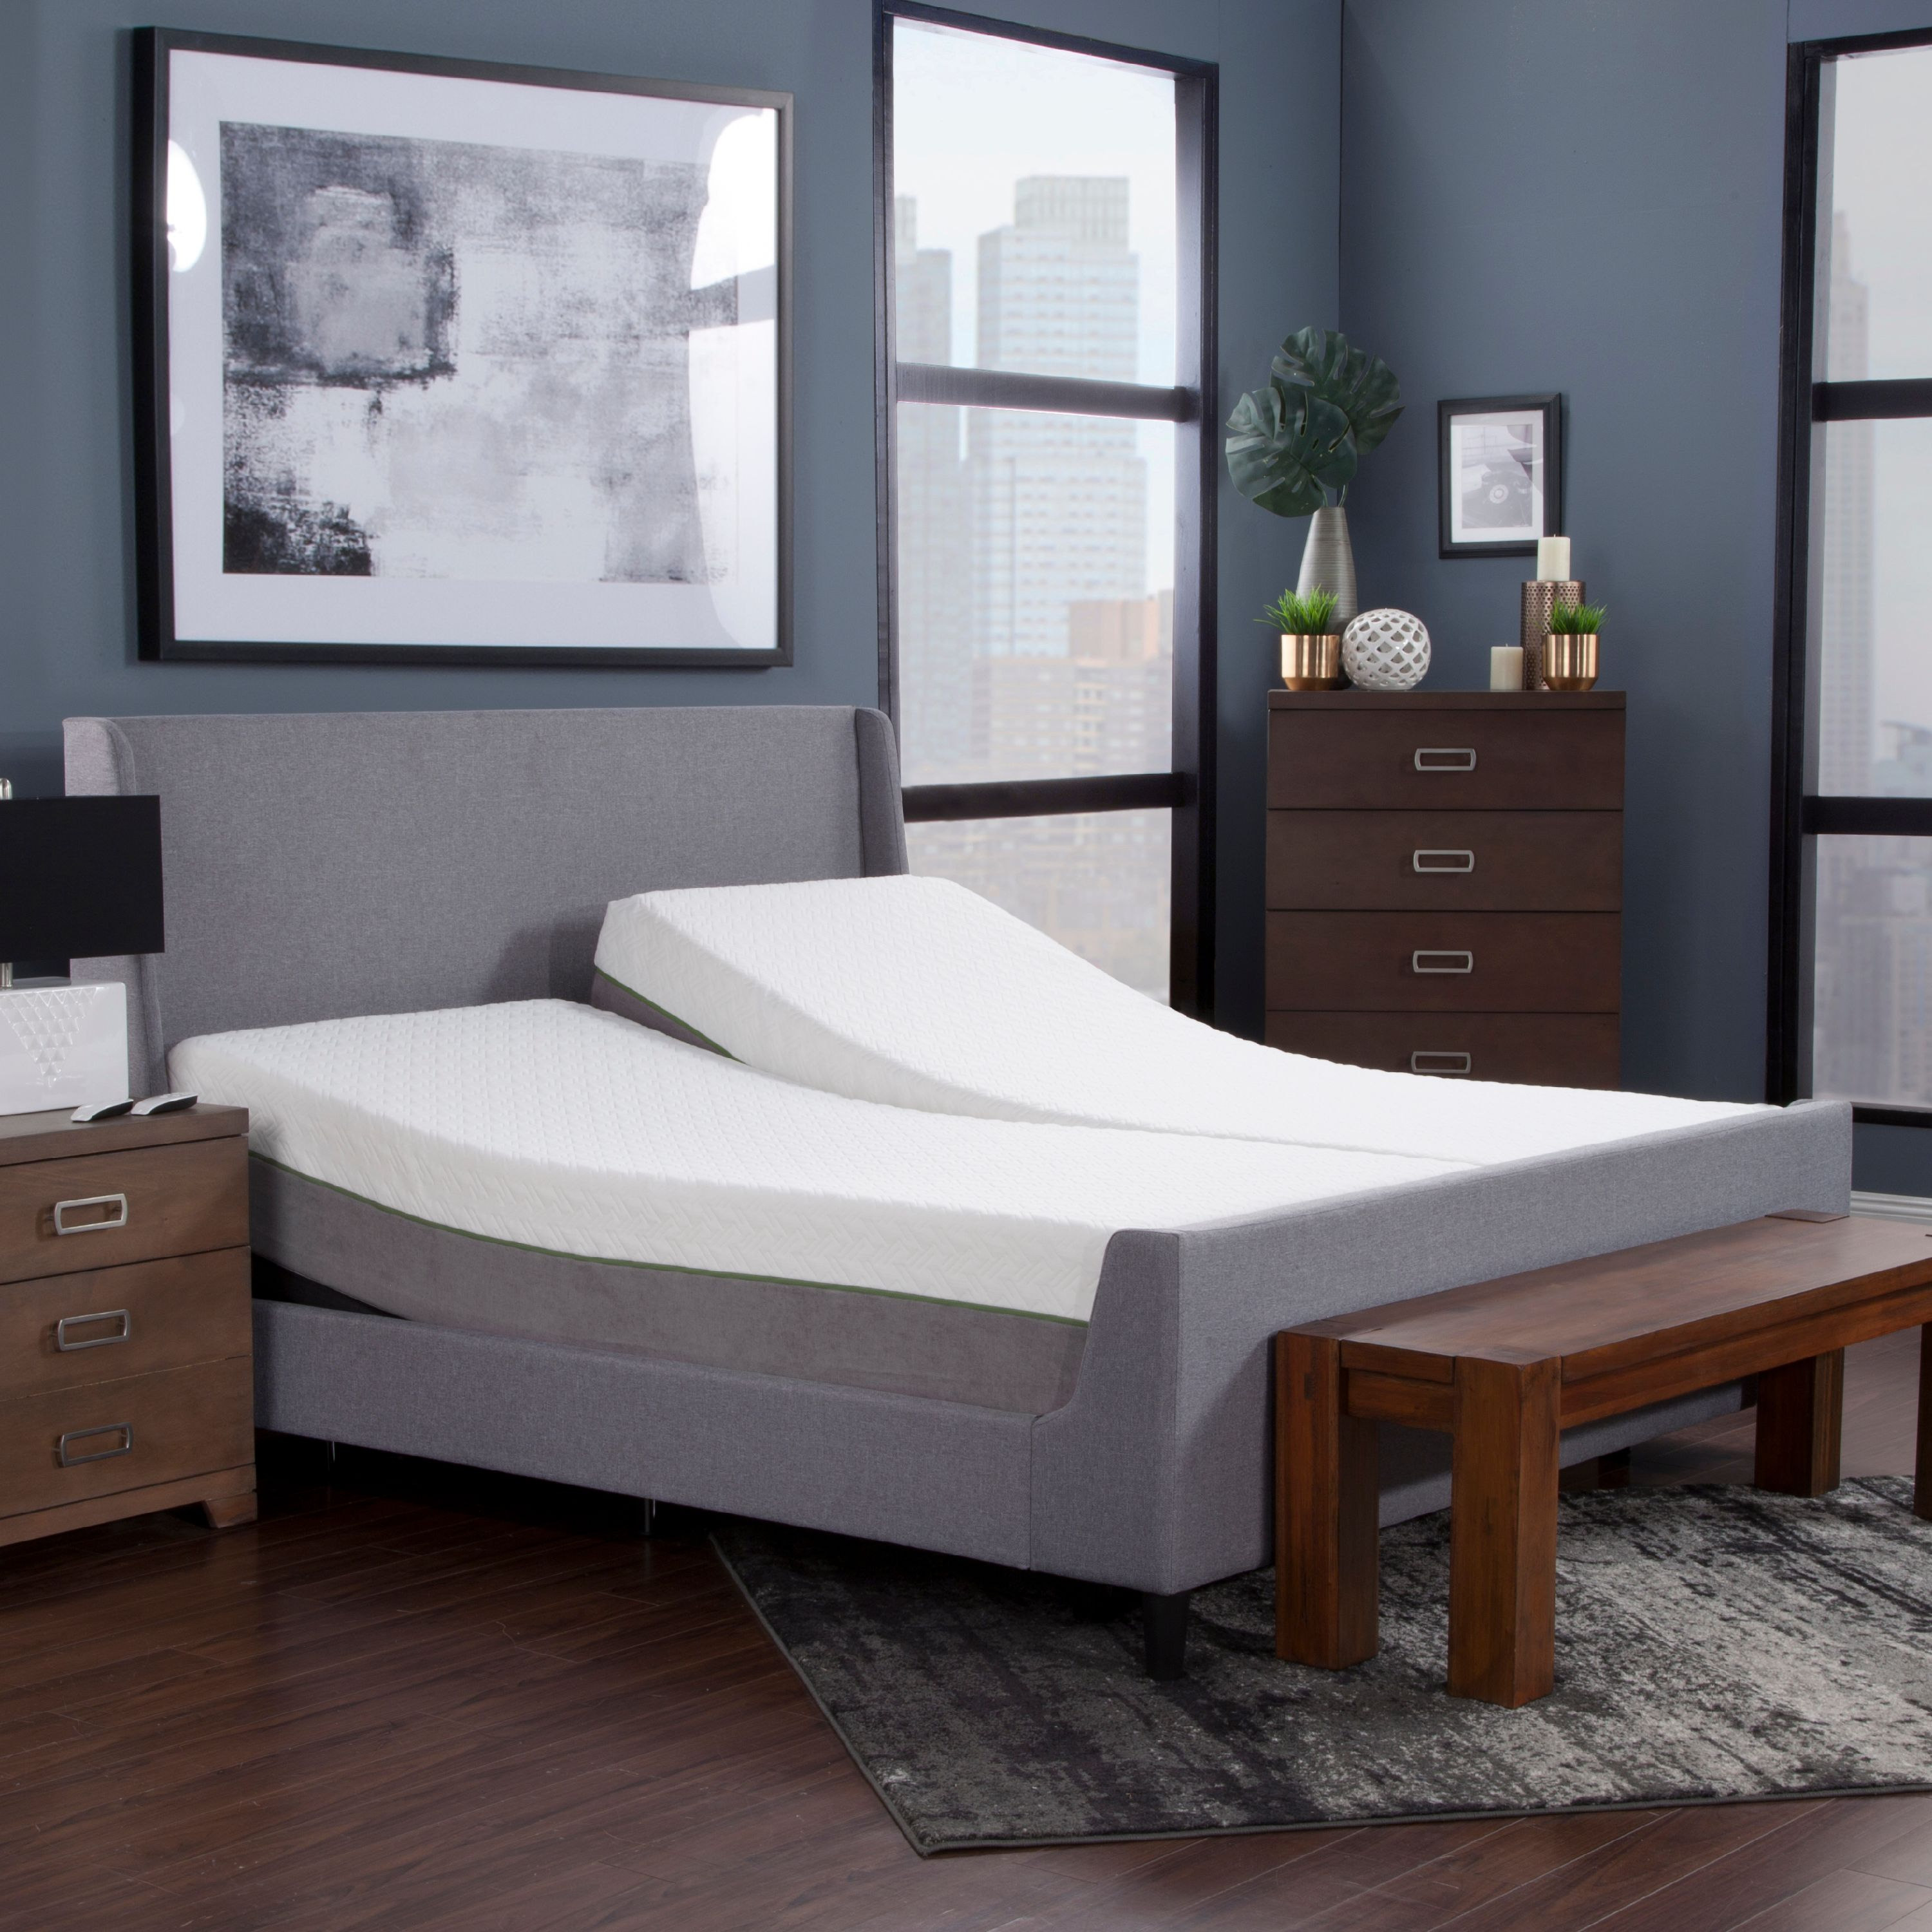 """Blissful Nights 12"""" Copper Infused Memory Foam Mattress, Cal King Split and Adjustable Base"""